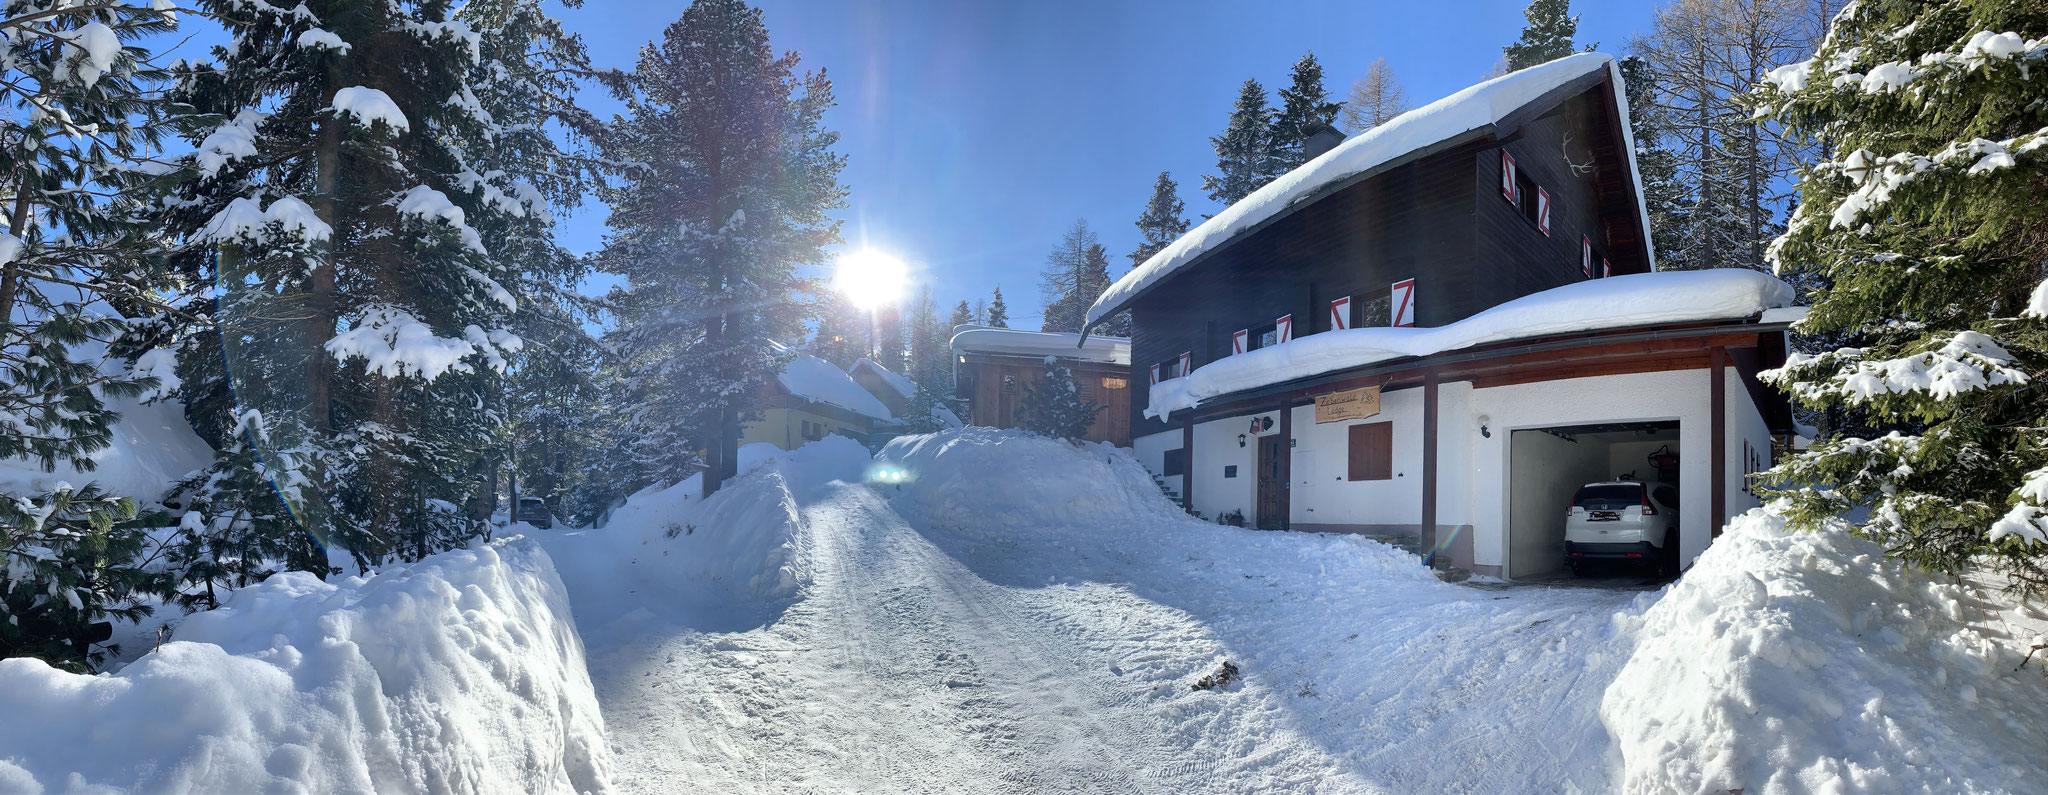 Zirbenwald Lodge - Winterimpression